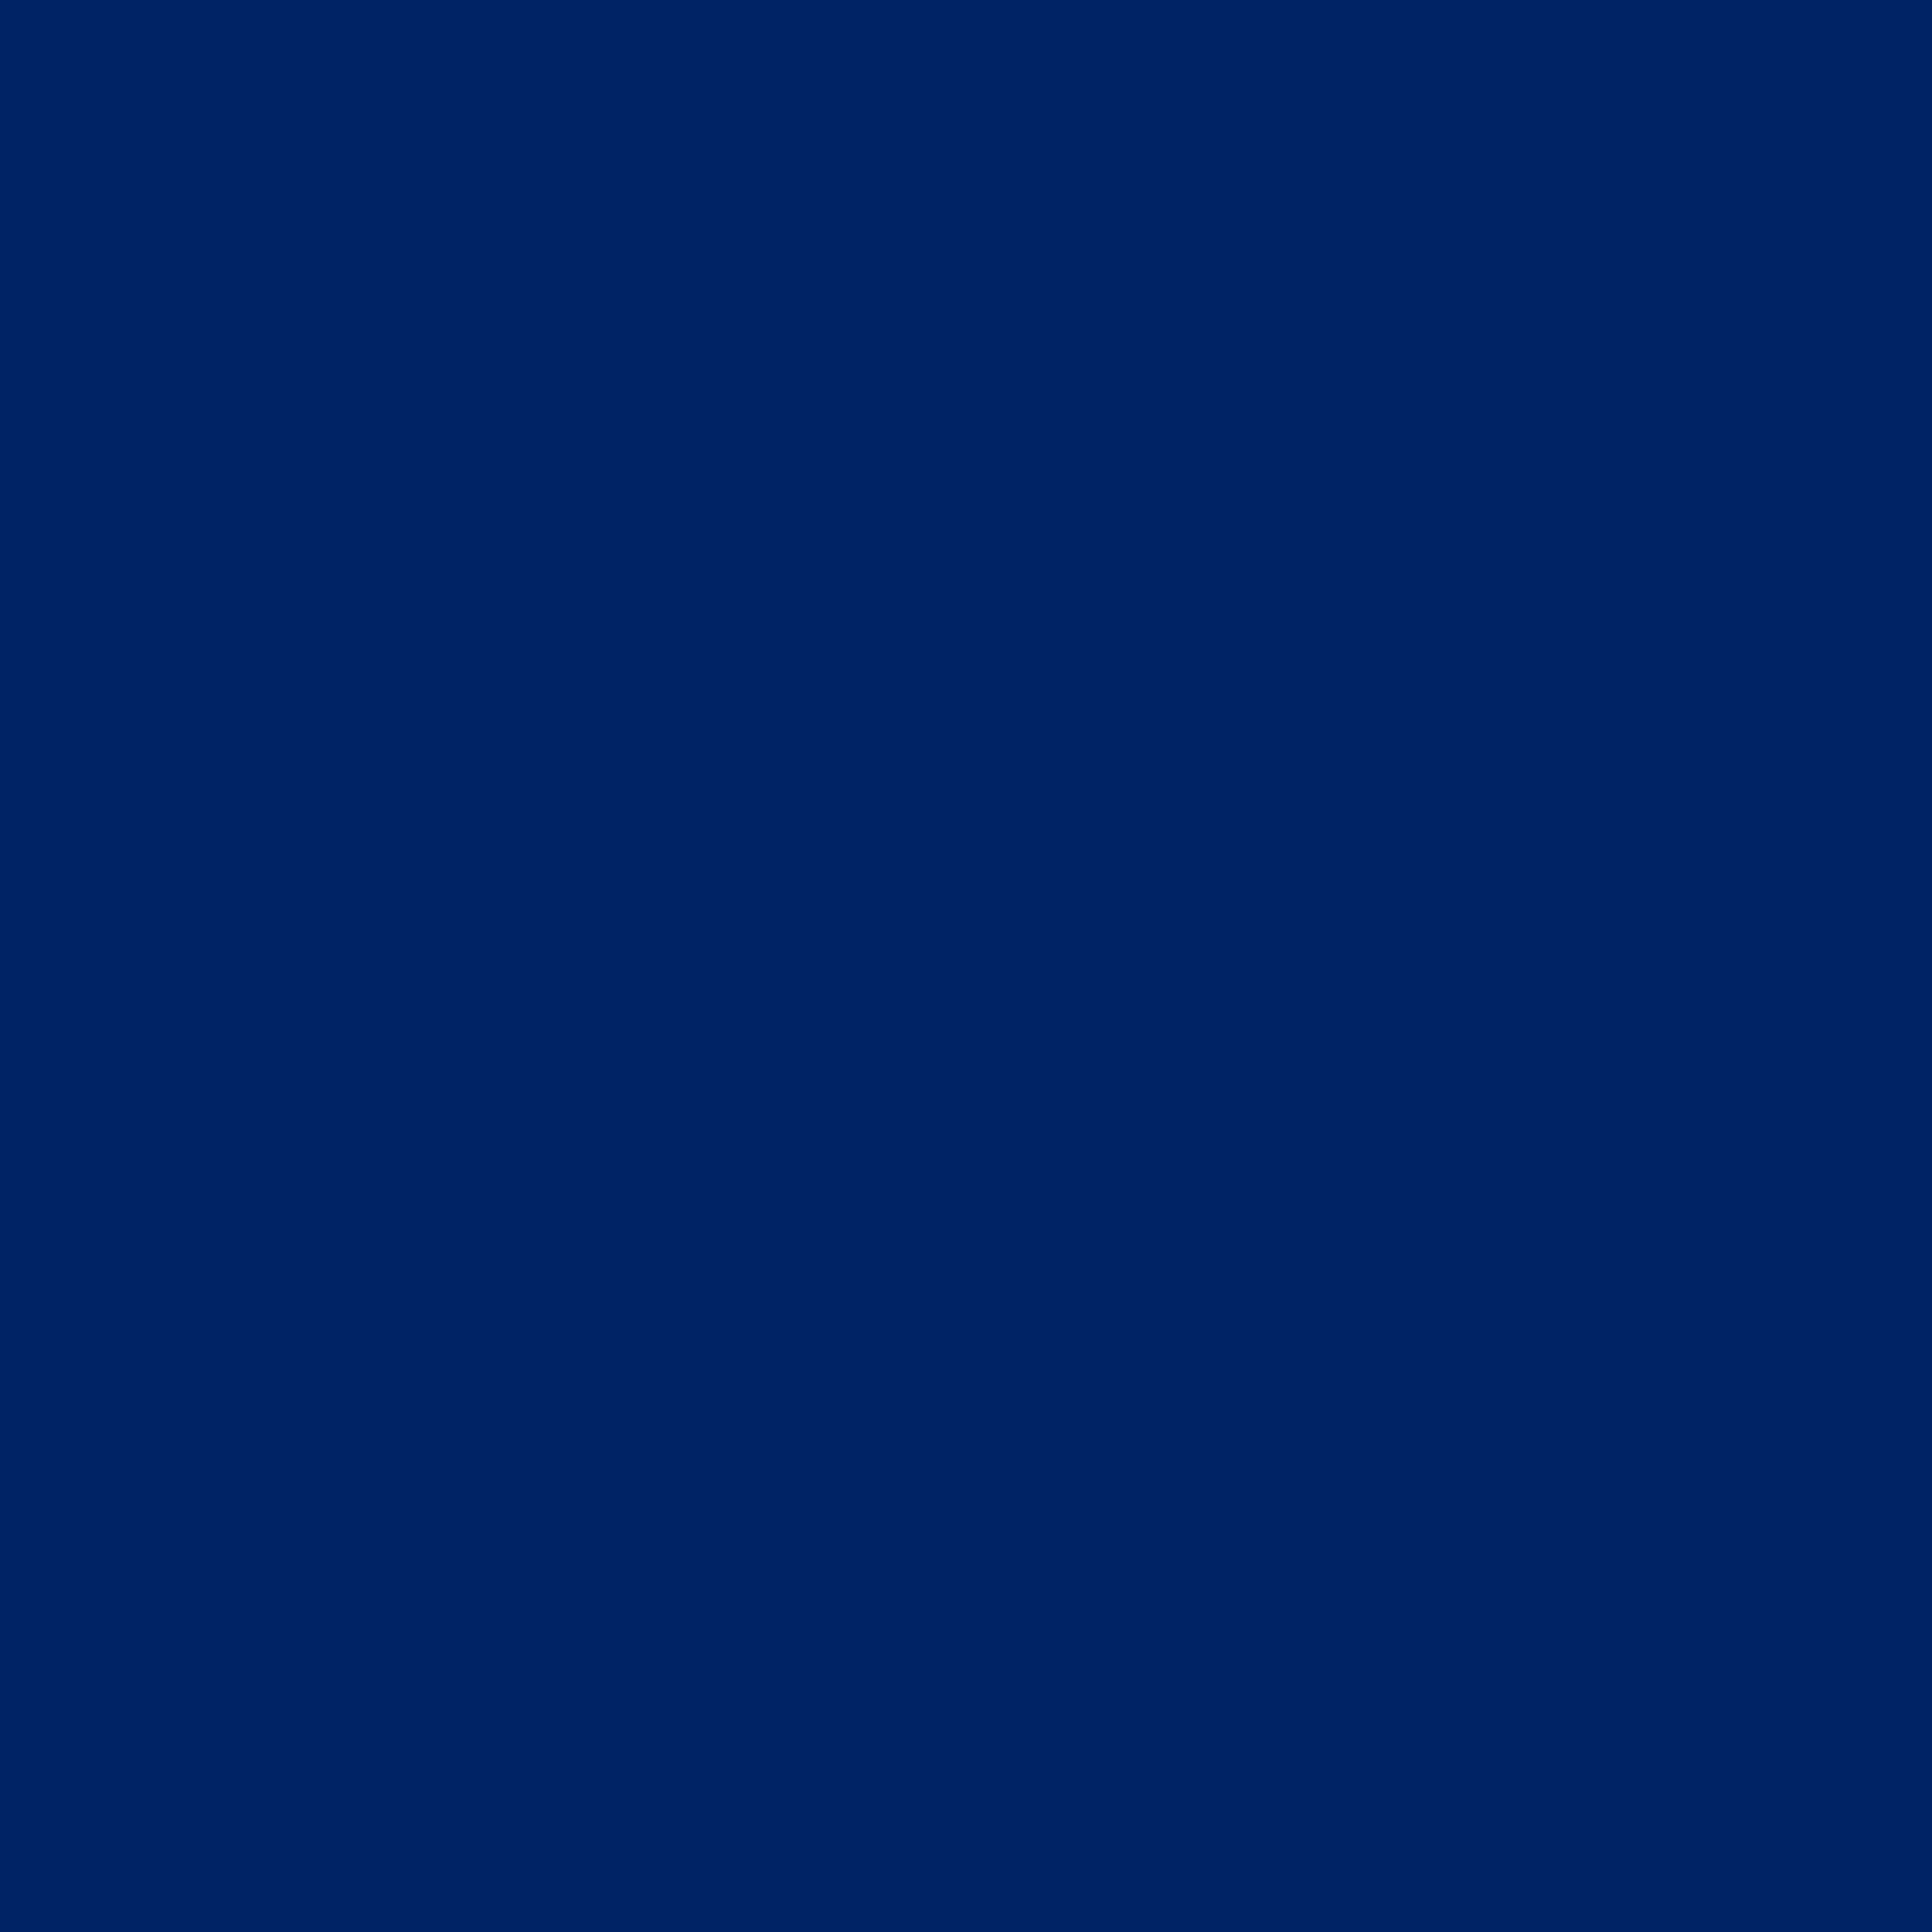 2048x2048 Royal Blue Traditional Solid Color Background